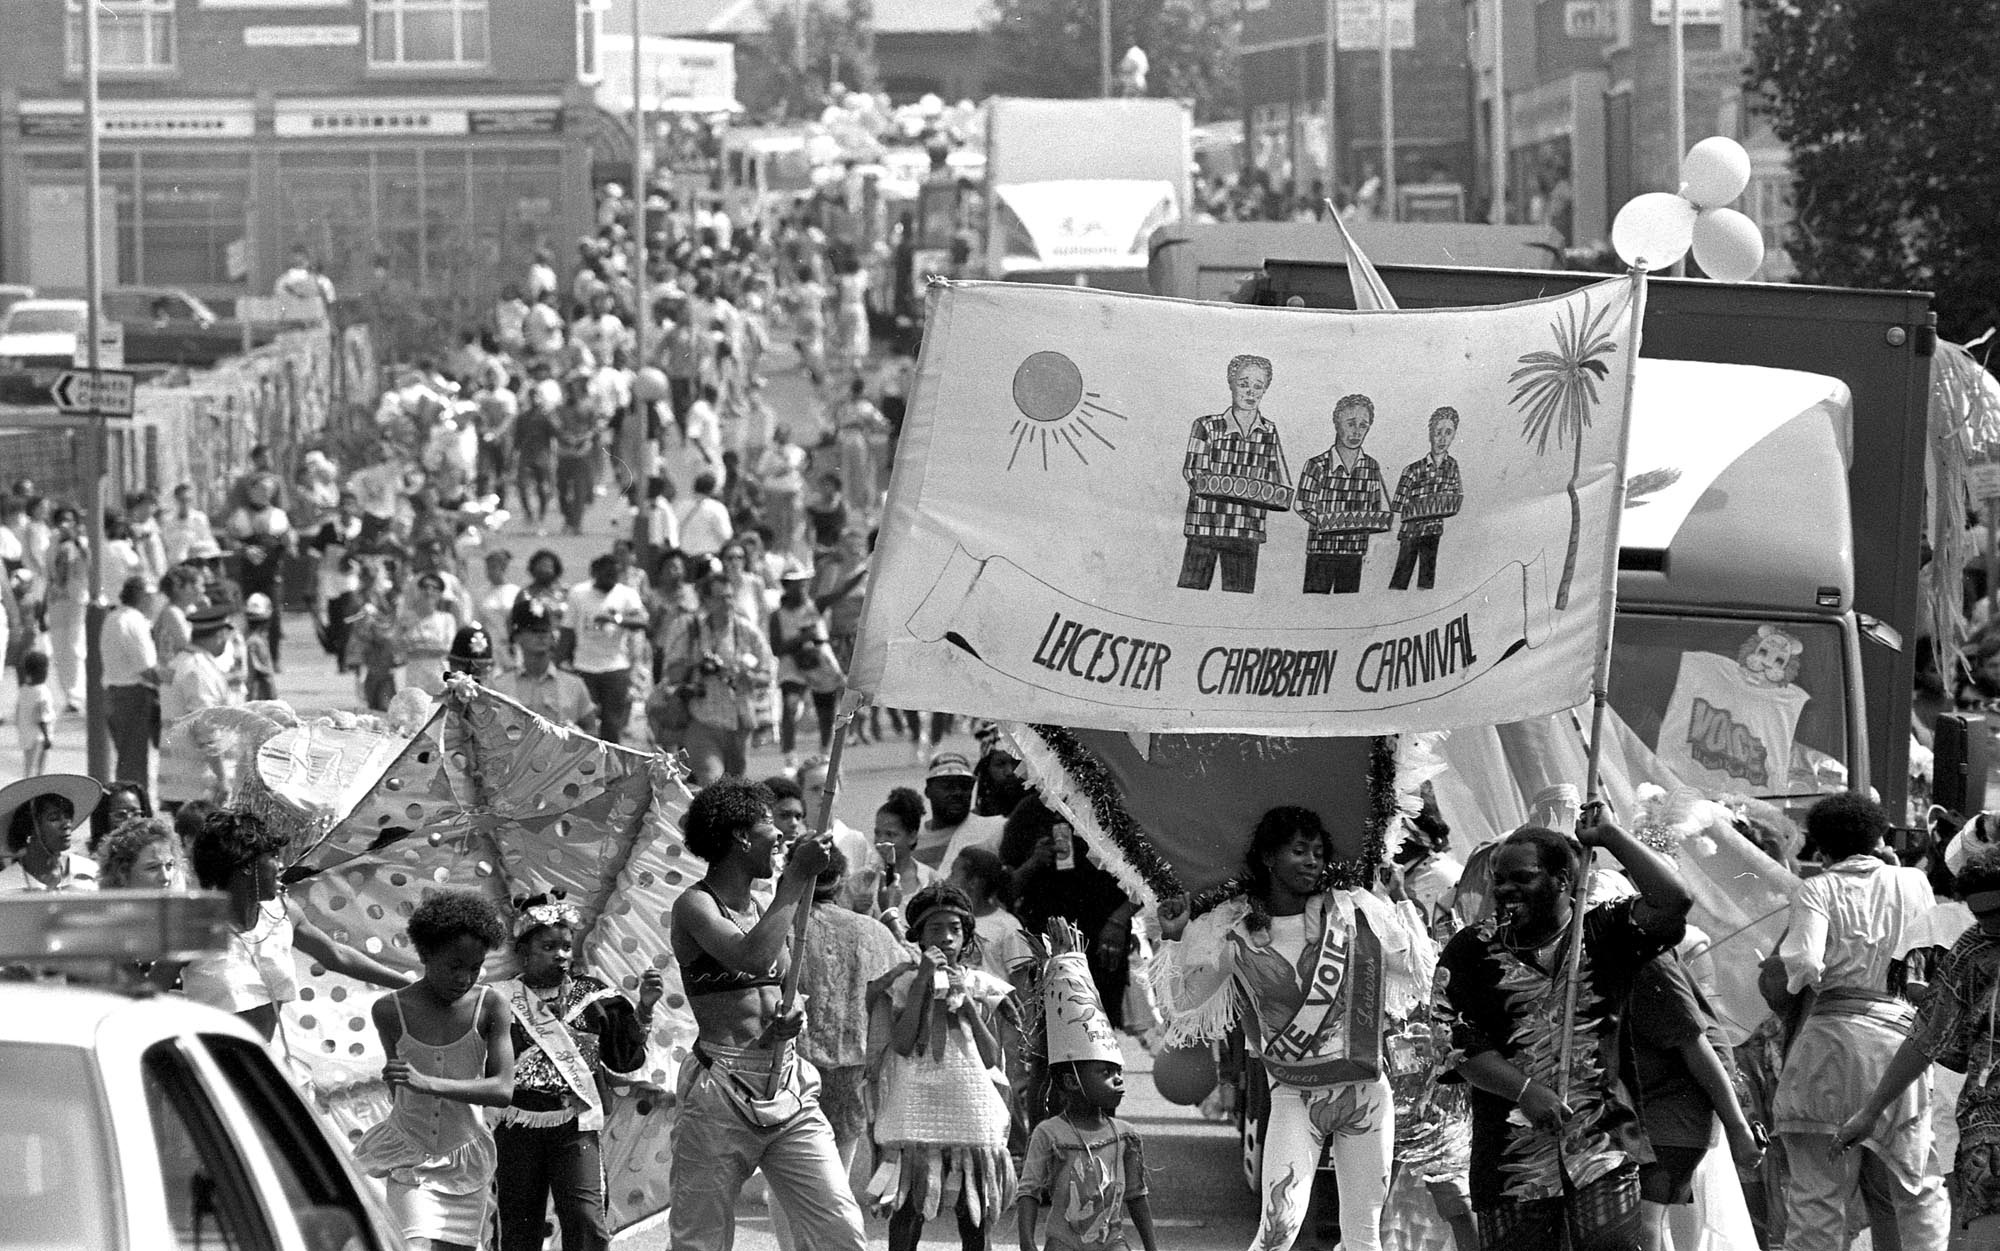 The Carnival parade makes its way along Sparkenhoe Street in front of large crowds, 1990 -